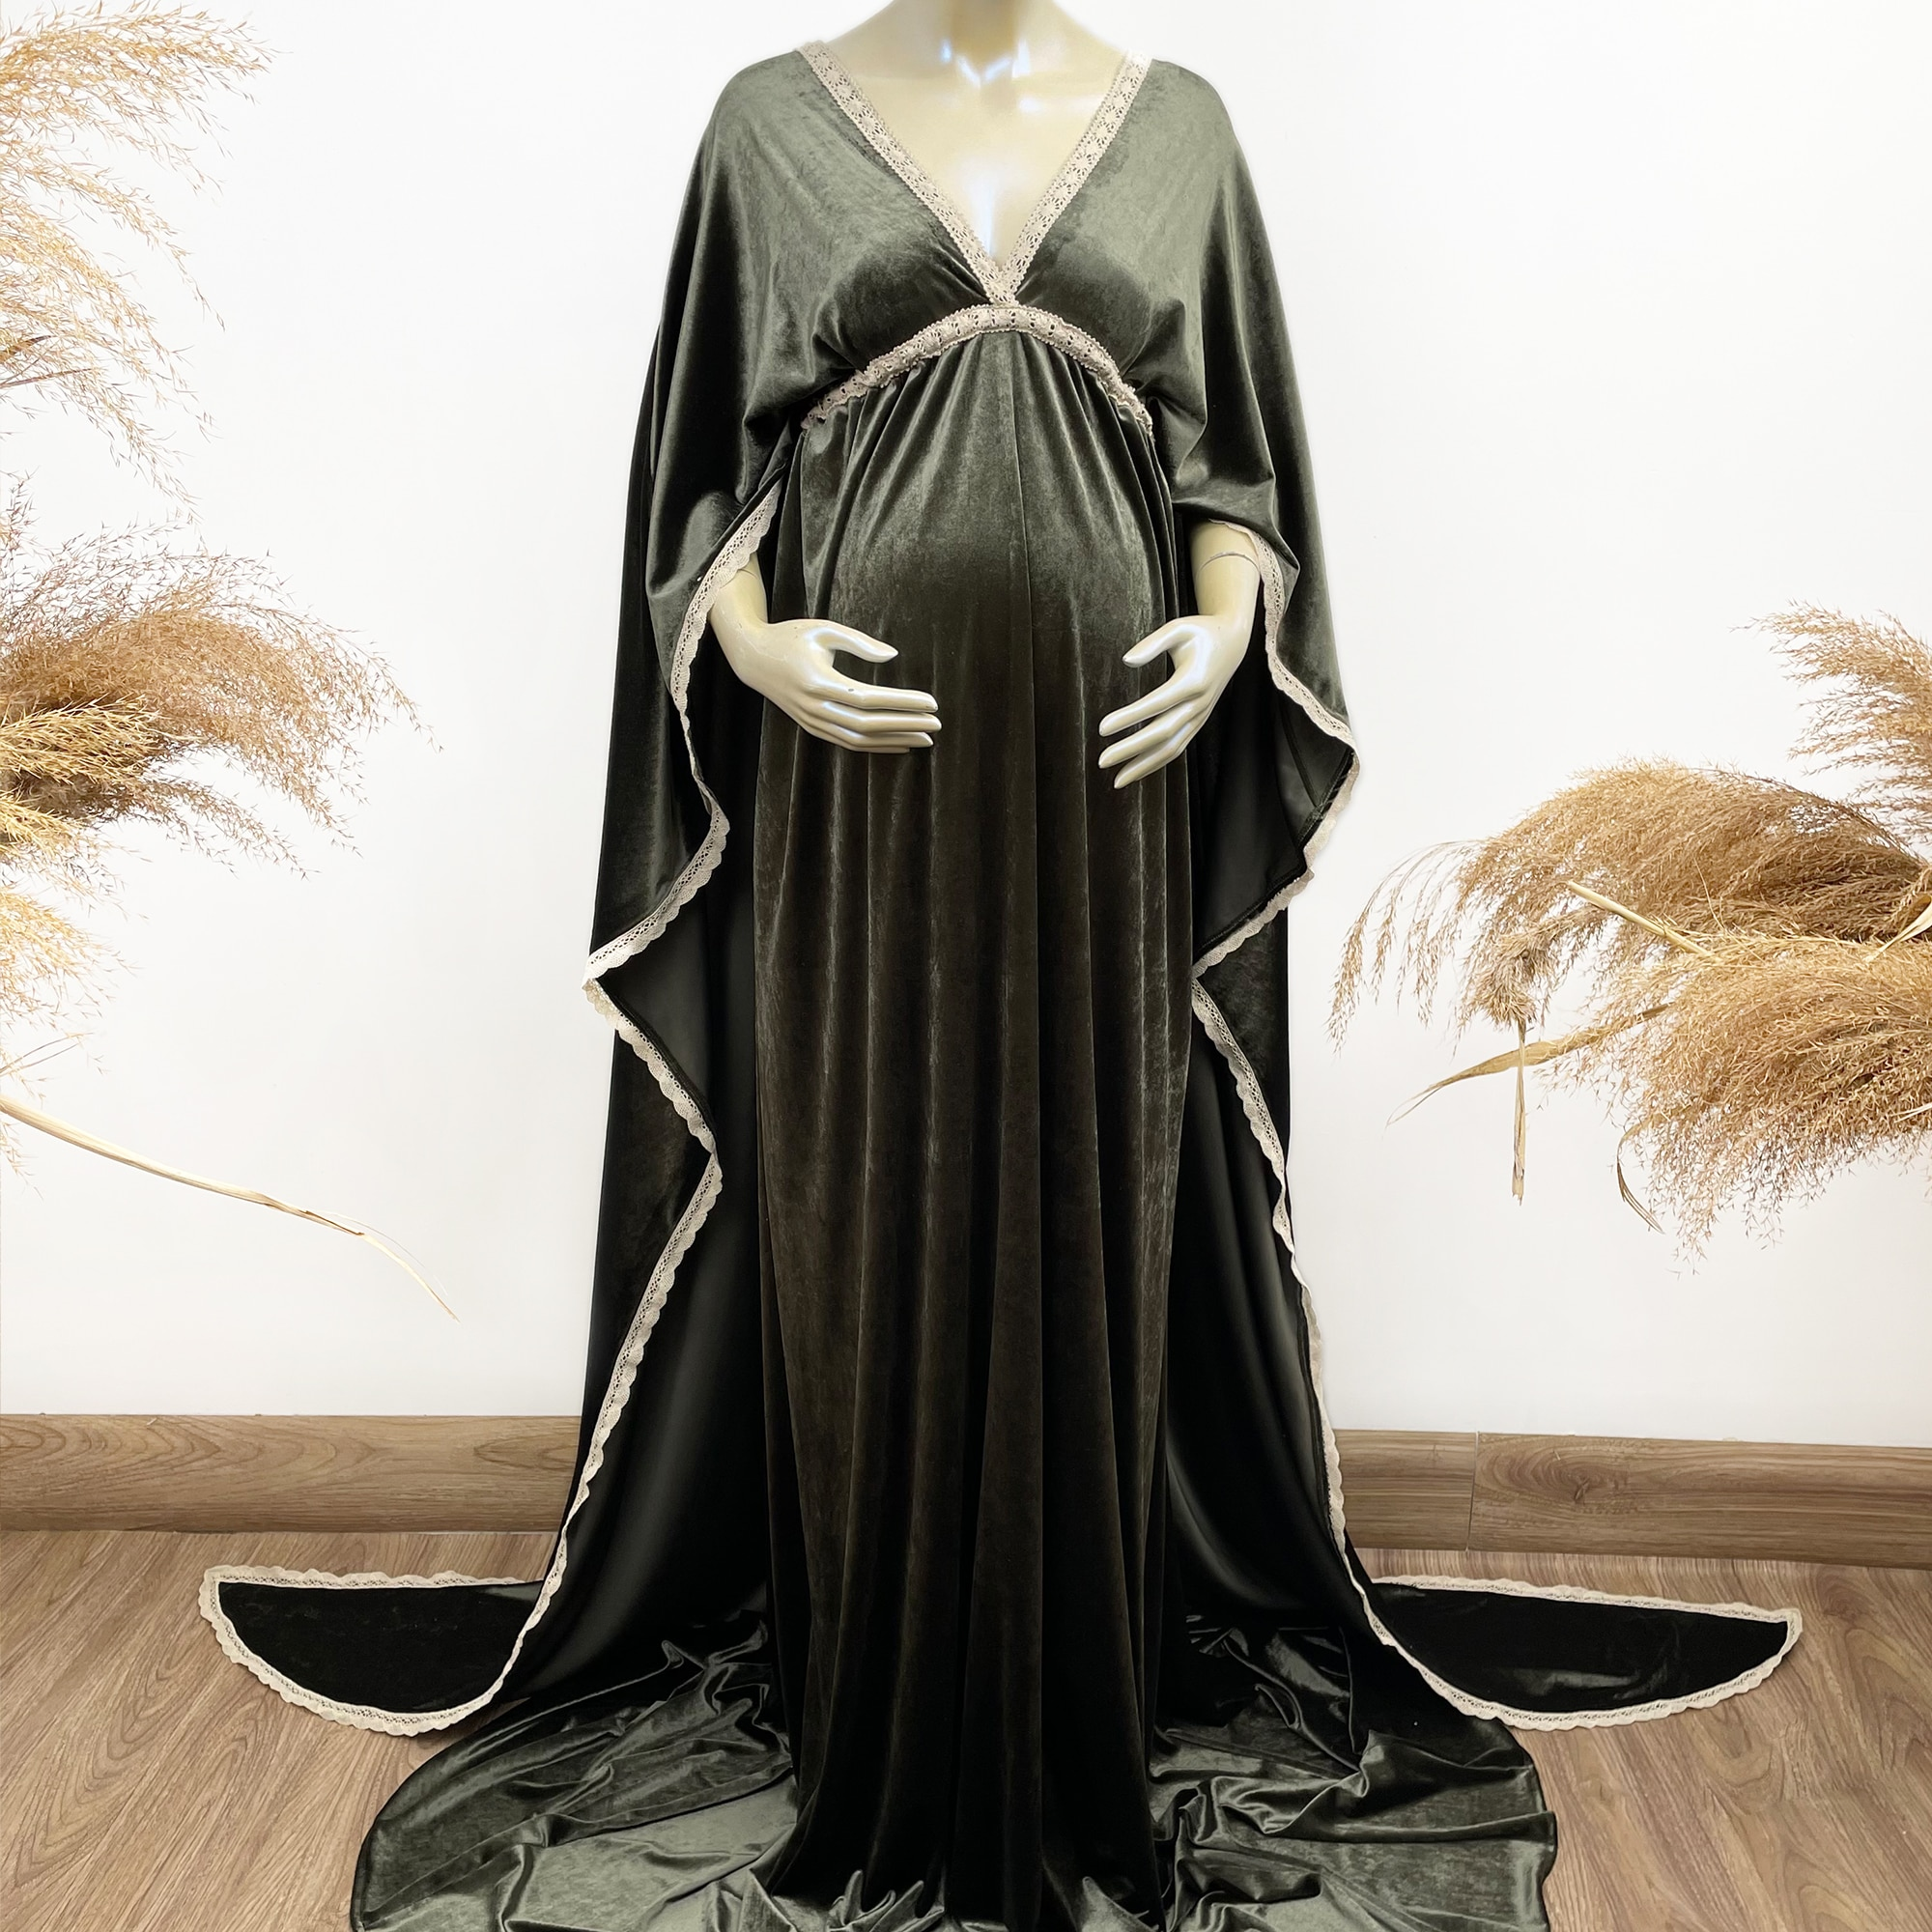 Long Cape Boho Soft Maxi White Edge Maternity Dress Pregnancy Velvet Gown for Woman Photography Prop Baby Shower Costume enlarge